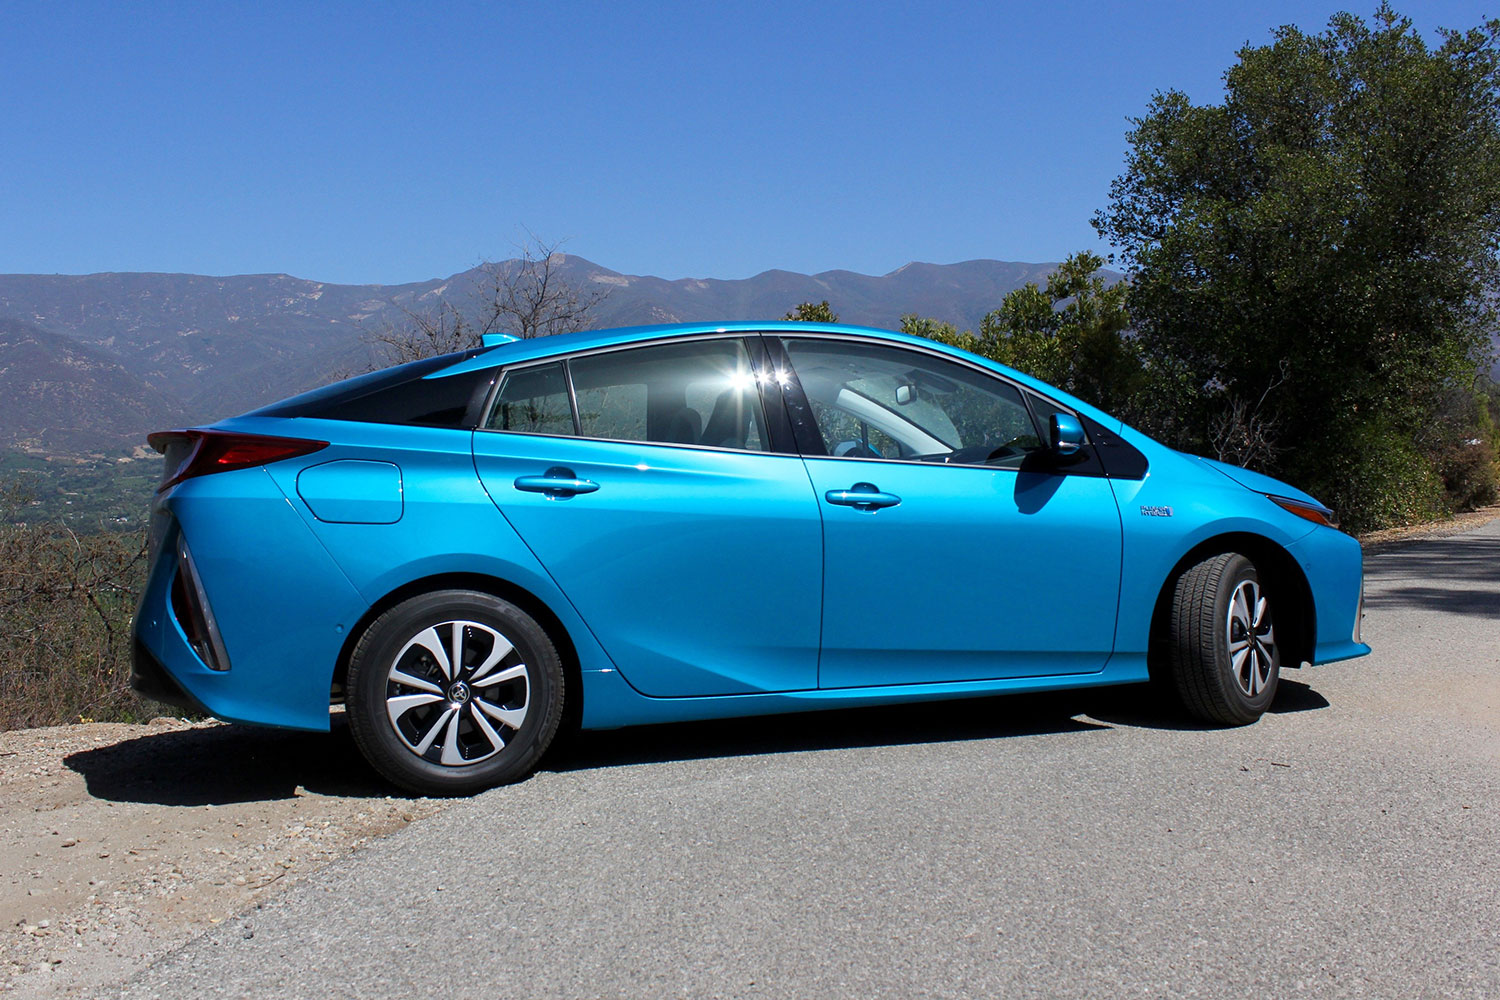 Toyota simultaneously focusing on hybrids and batterypowered